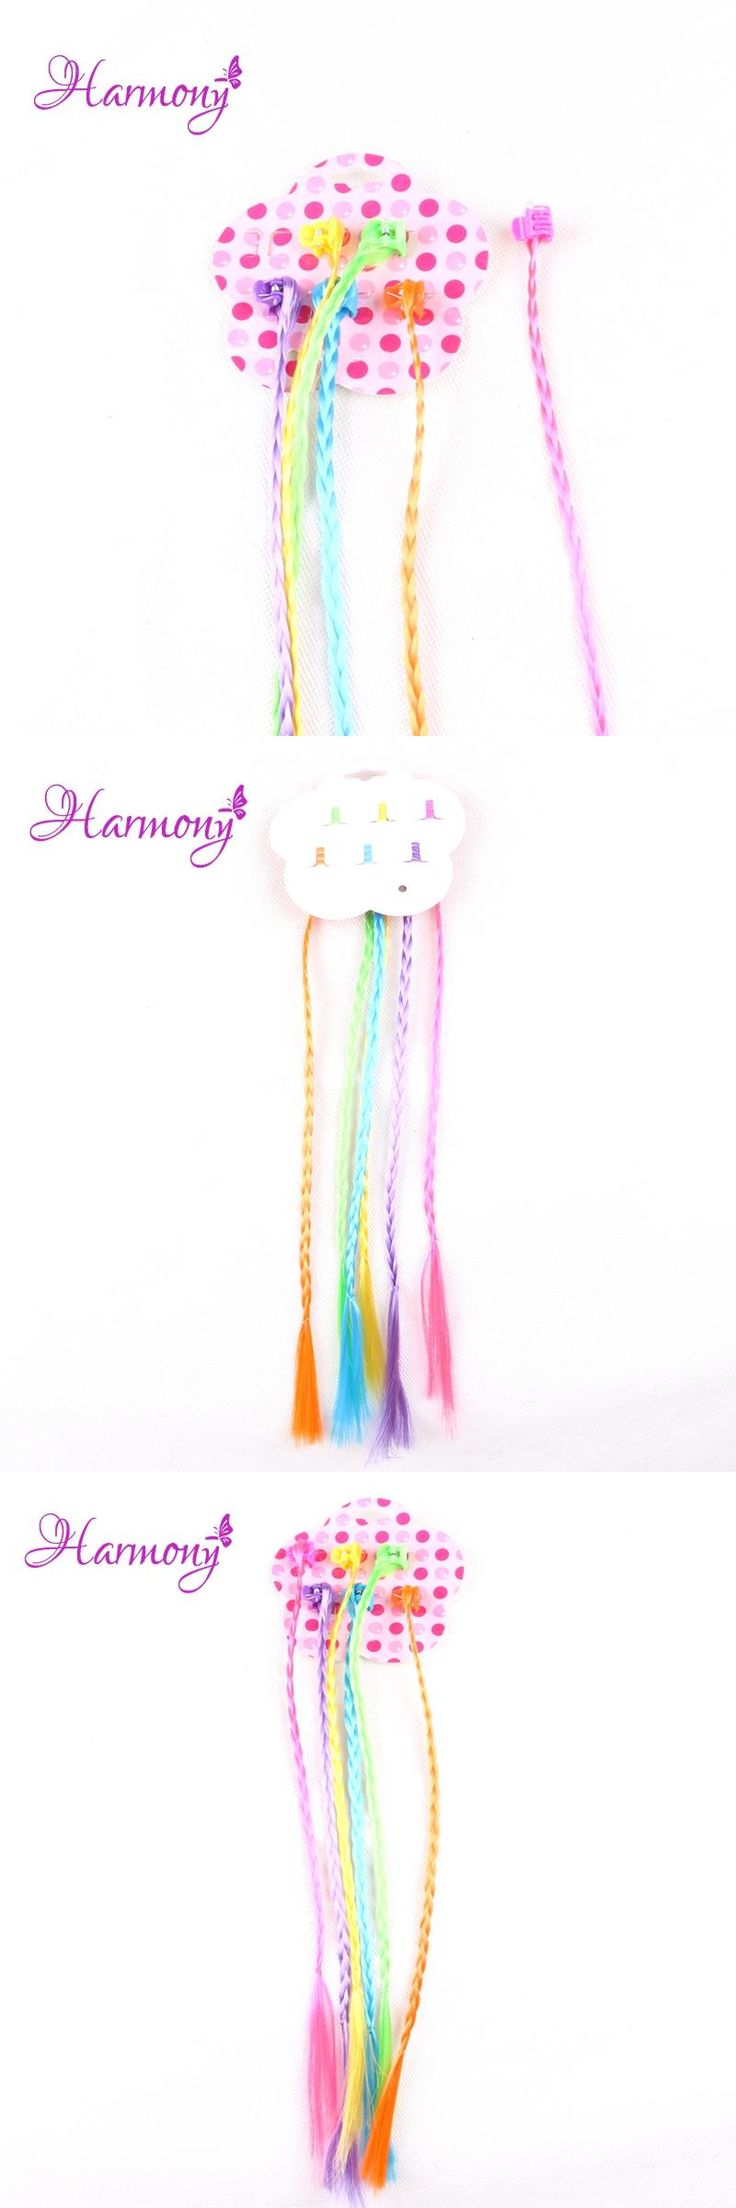 Harmony Plus Hair 1pack Small claw clip with synthetic pre braided hair for kids and girls and party